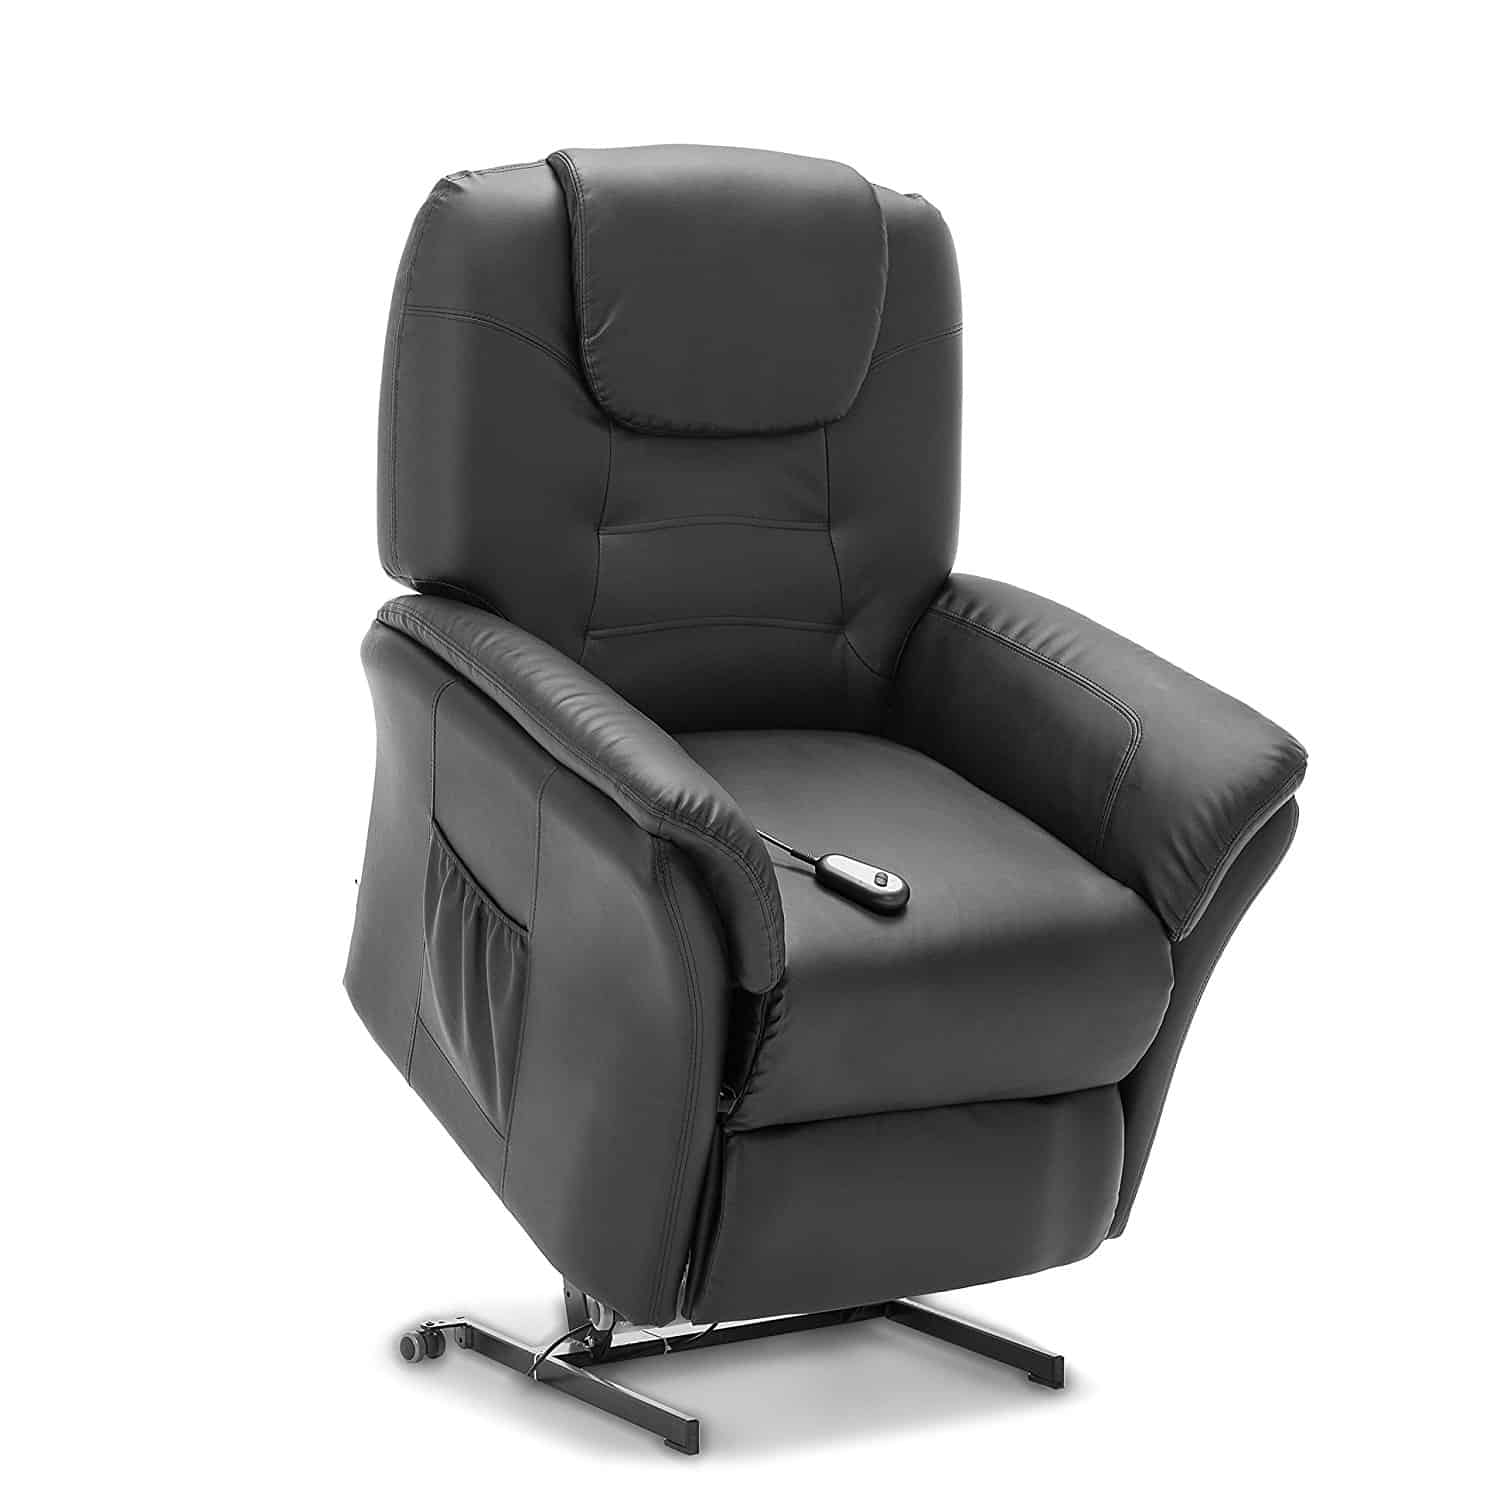 electric reclining chairs for elderly leather chair pottery barn people uk care guide